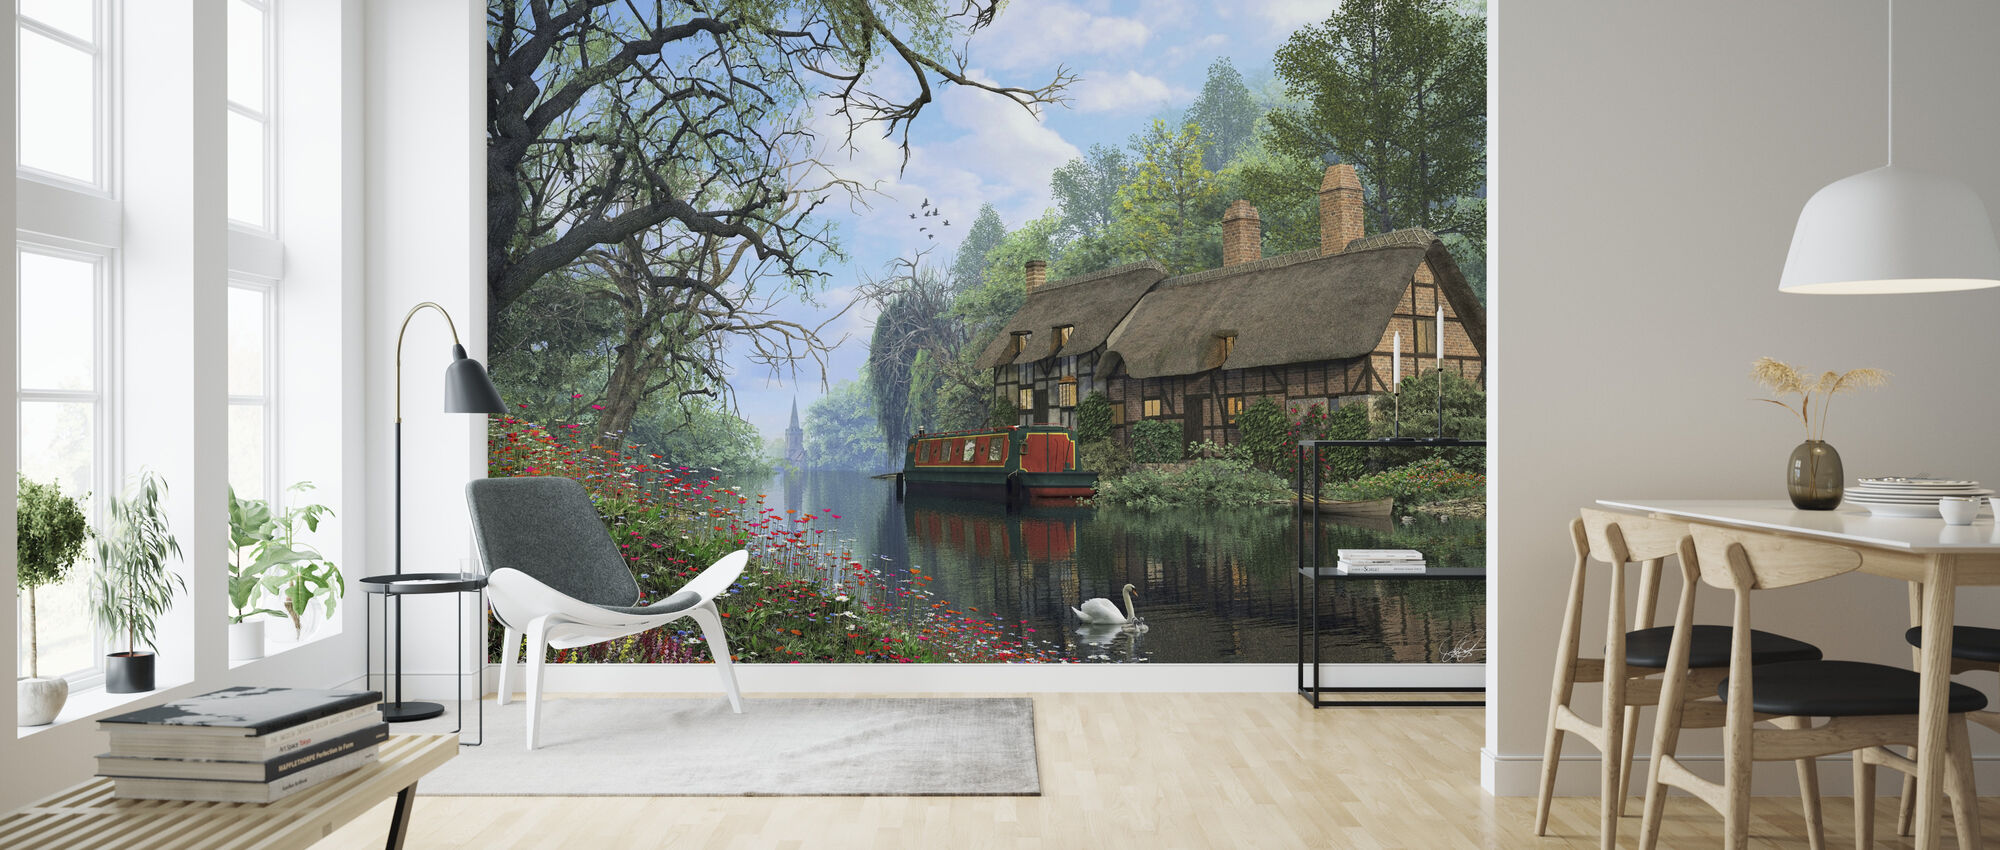 Old Woodland Canal - Wallpaper - Living Room